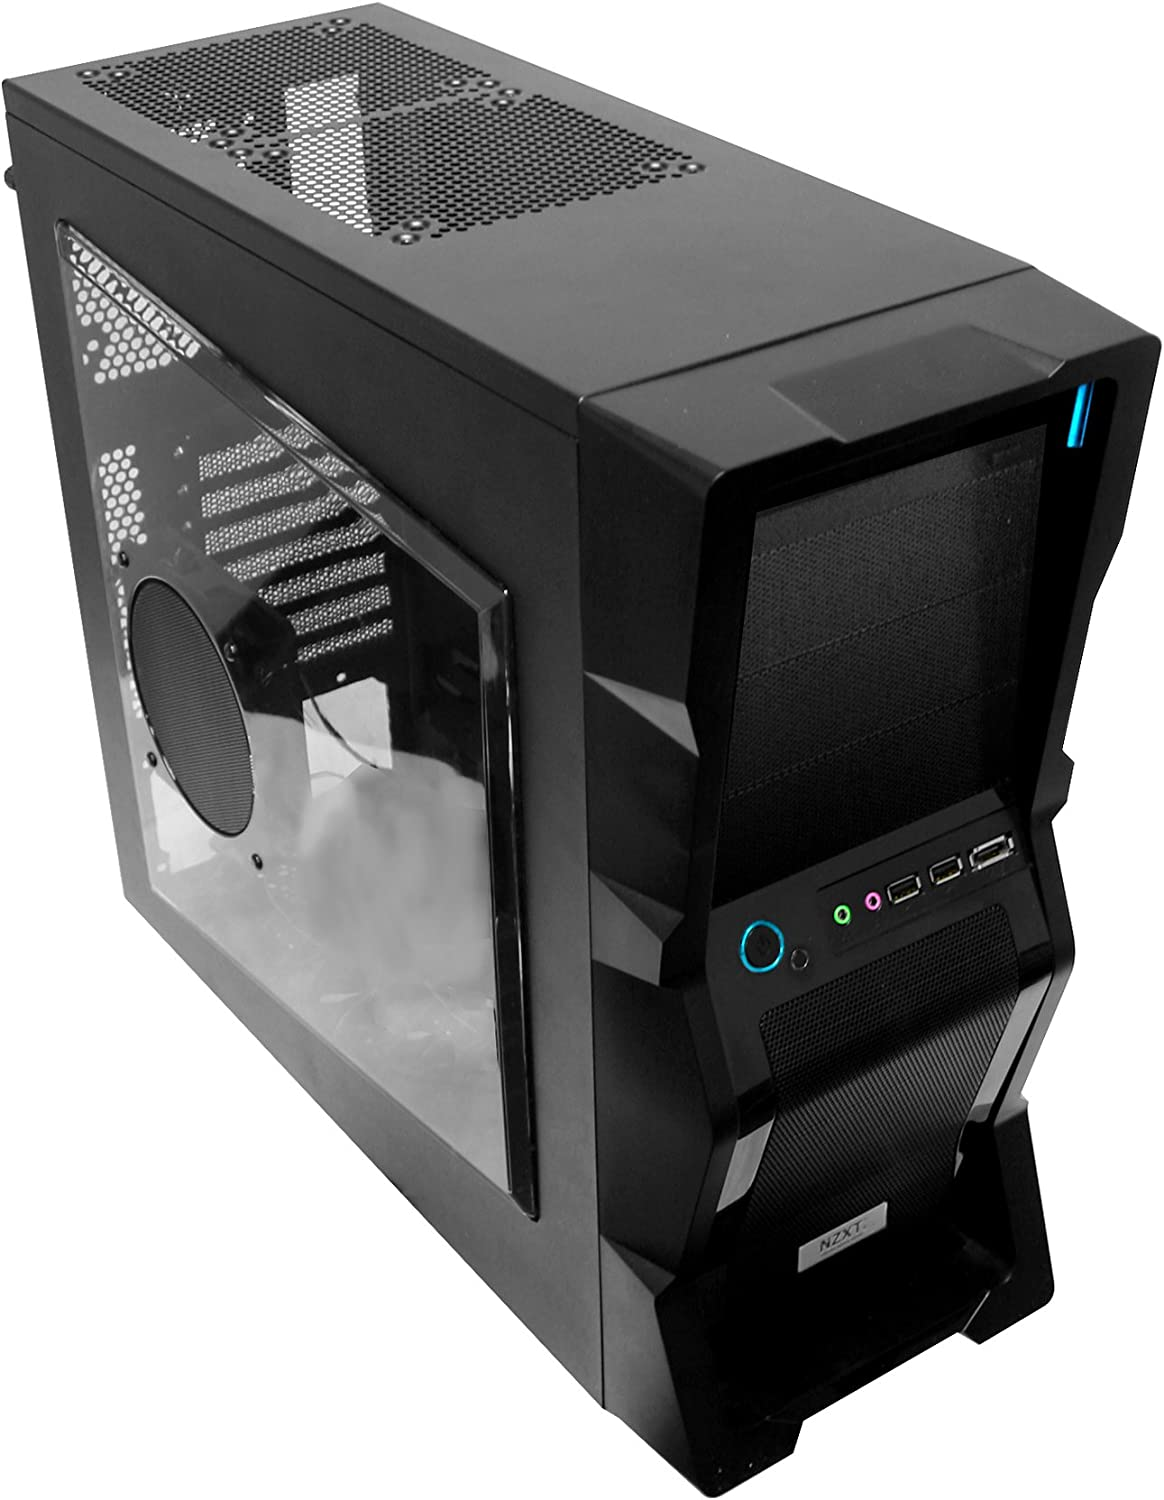 NZXT M59 Midi-Tower Negro 500 W - Caja de Ordenador (Midi-Tower, PC, Negro, ATX,Baby AT,Micro ATX, 500 W, 190 mm): Amazon.es: Informática